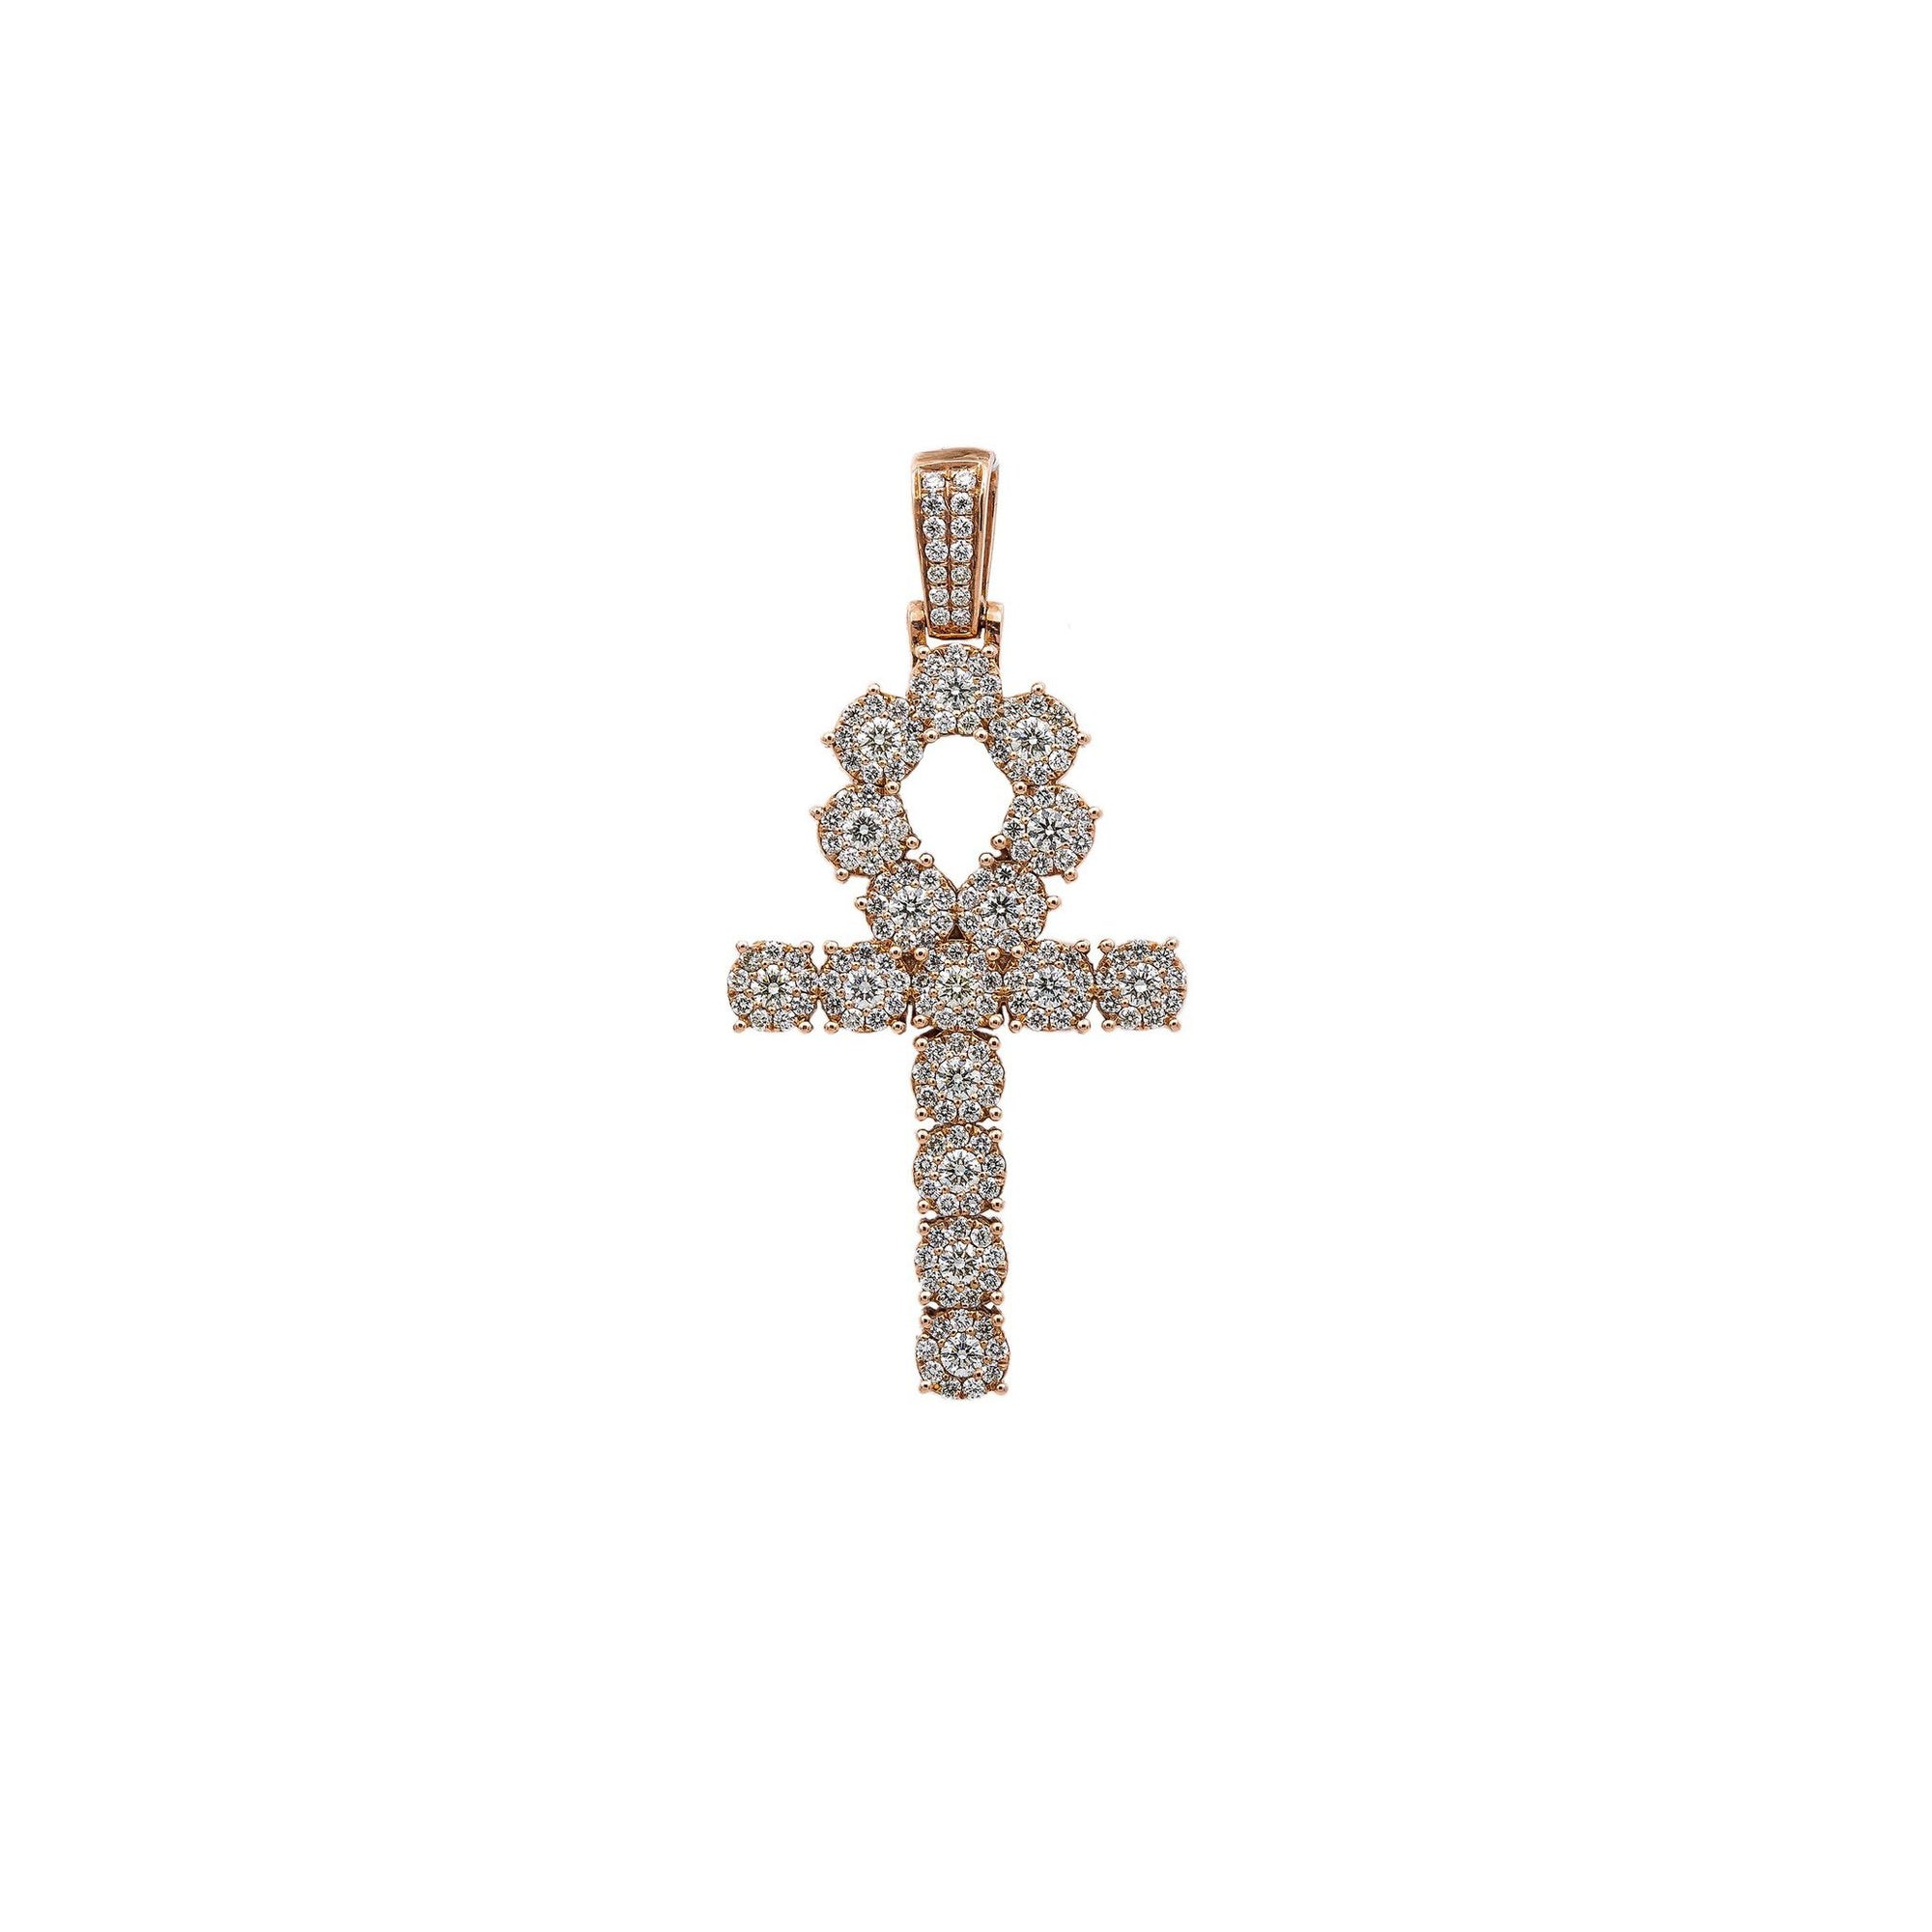 Unisex 14K Rose Gold Pendant with 2.97 CT Diamonds